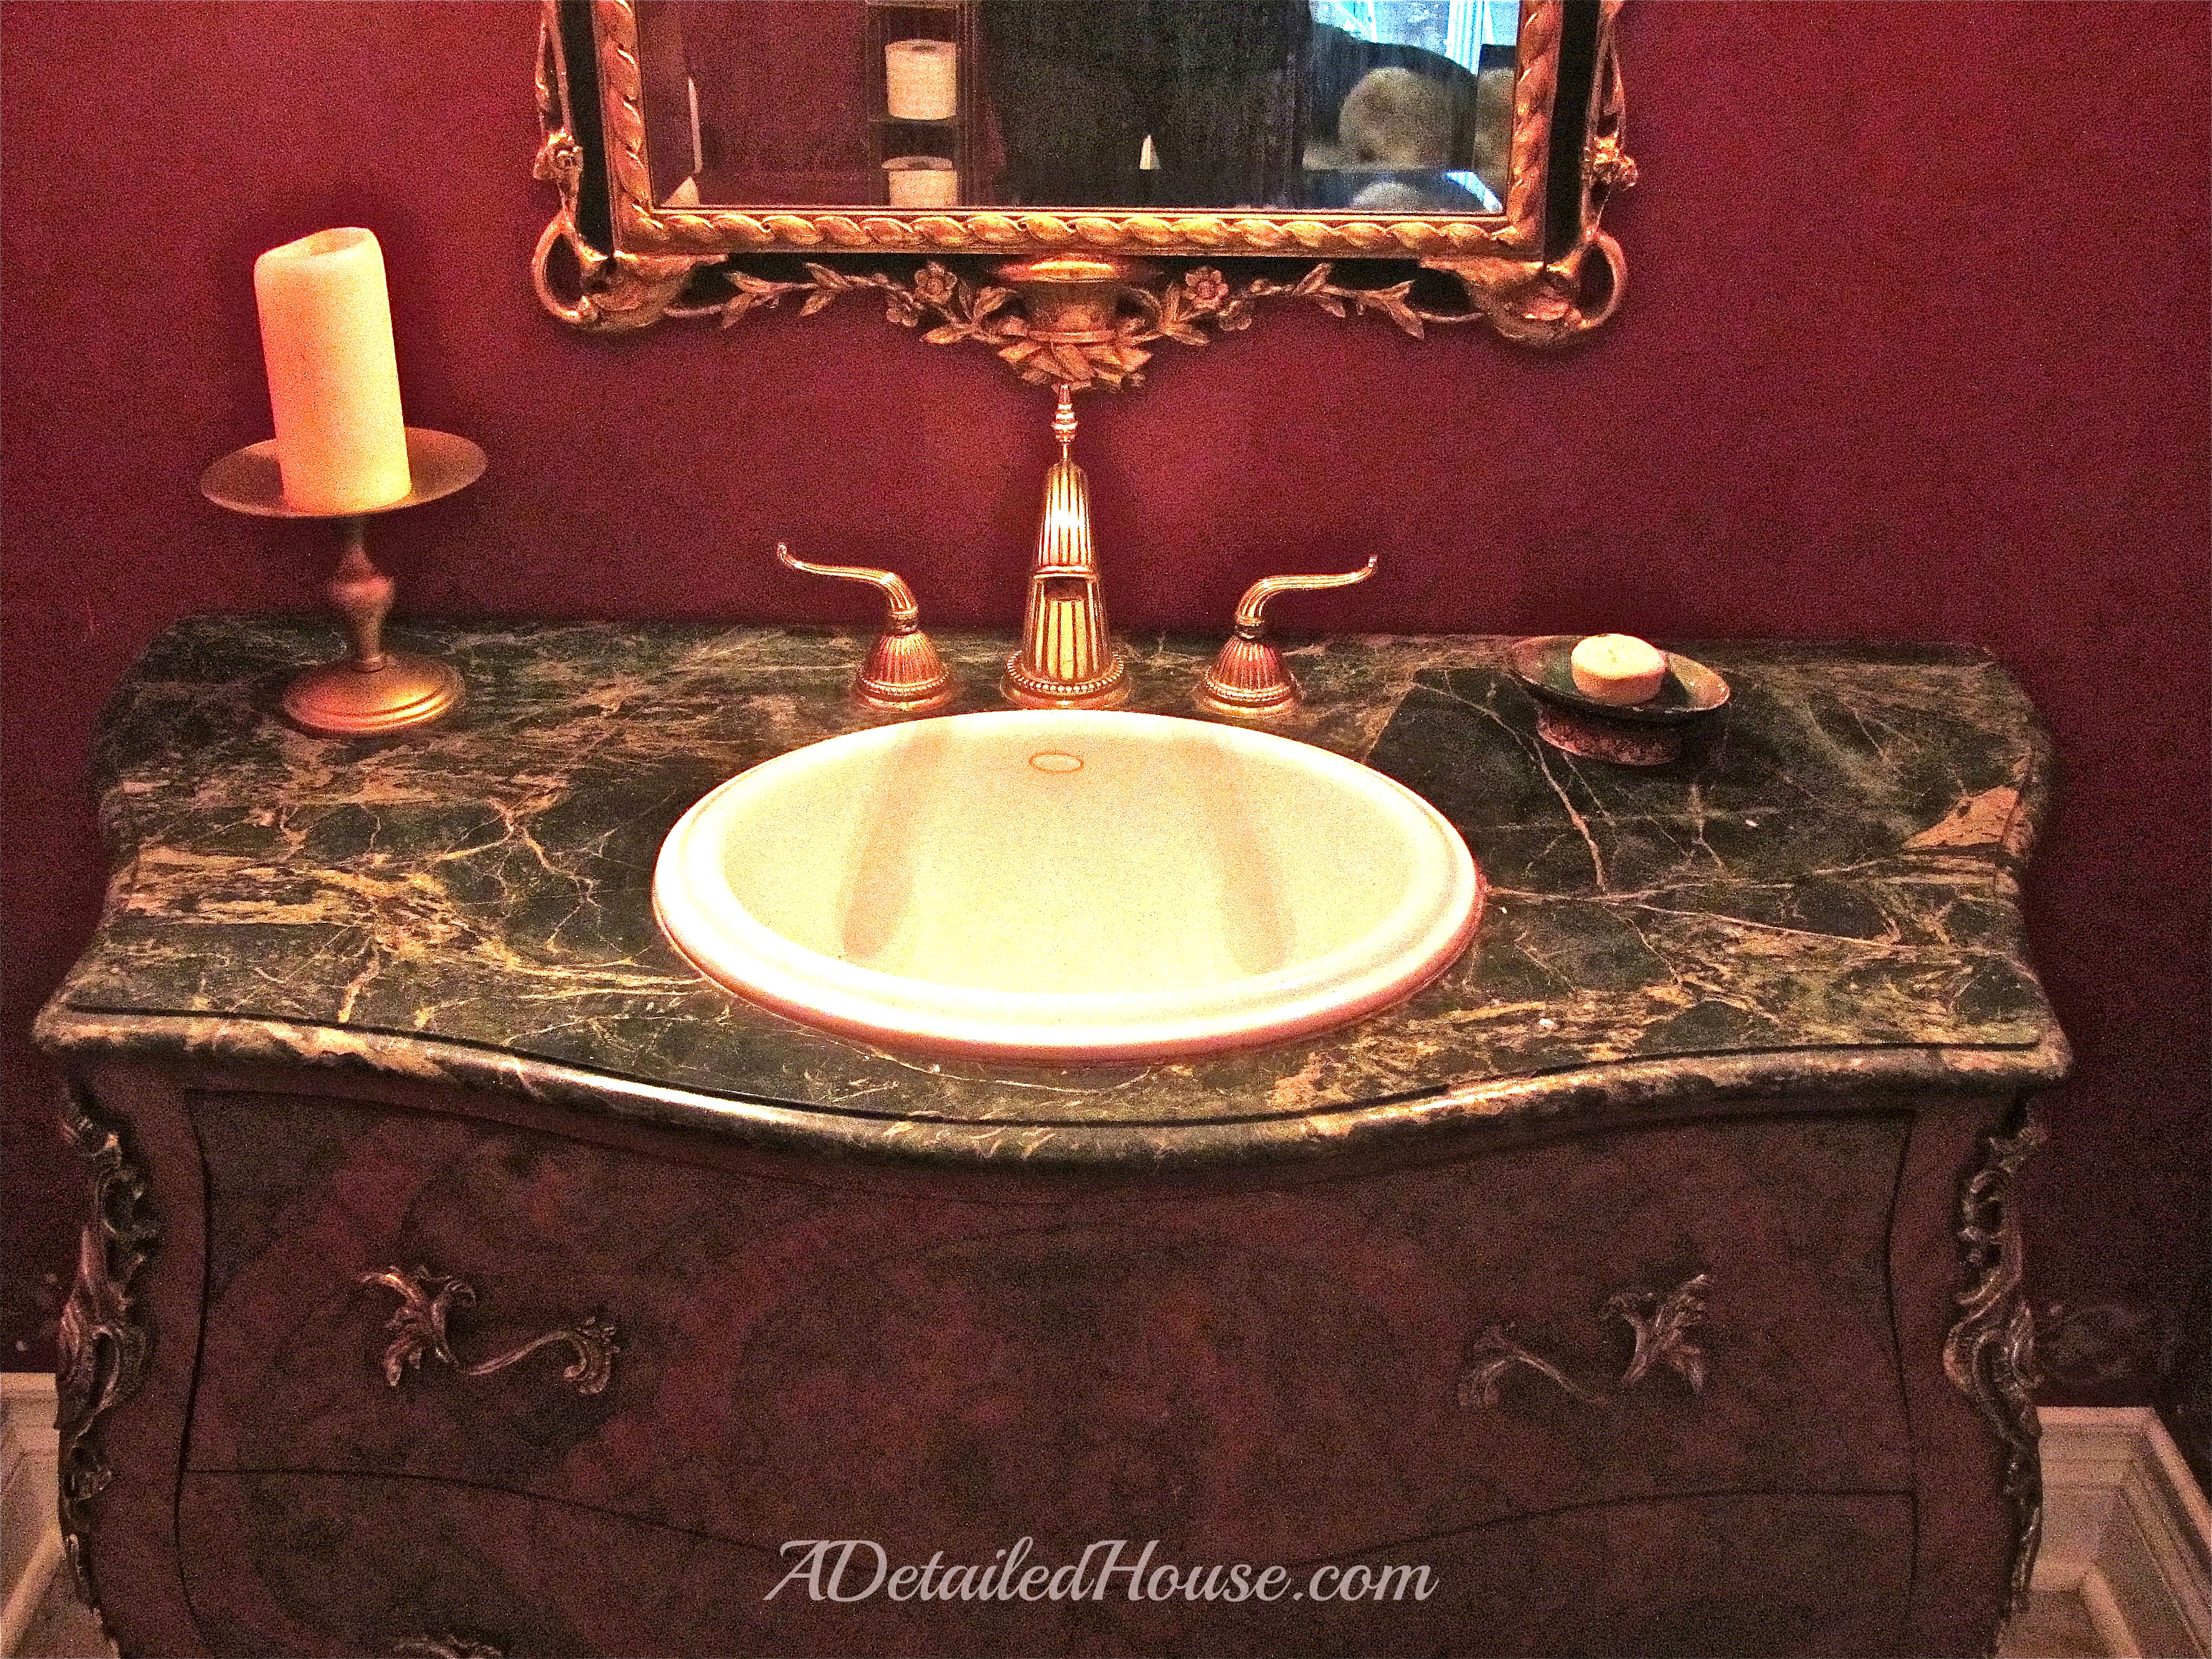 DIY Custom Bathroom Sink Cabinet | A Detailed House